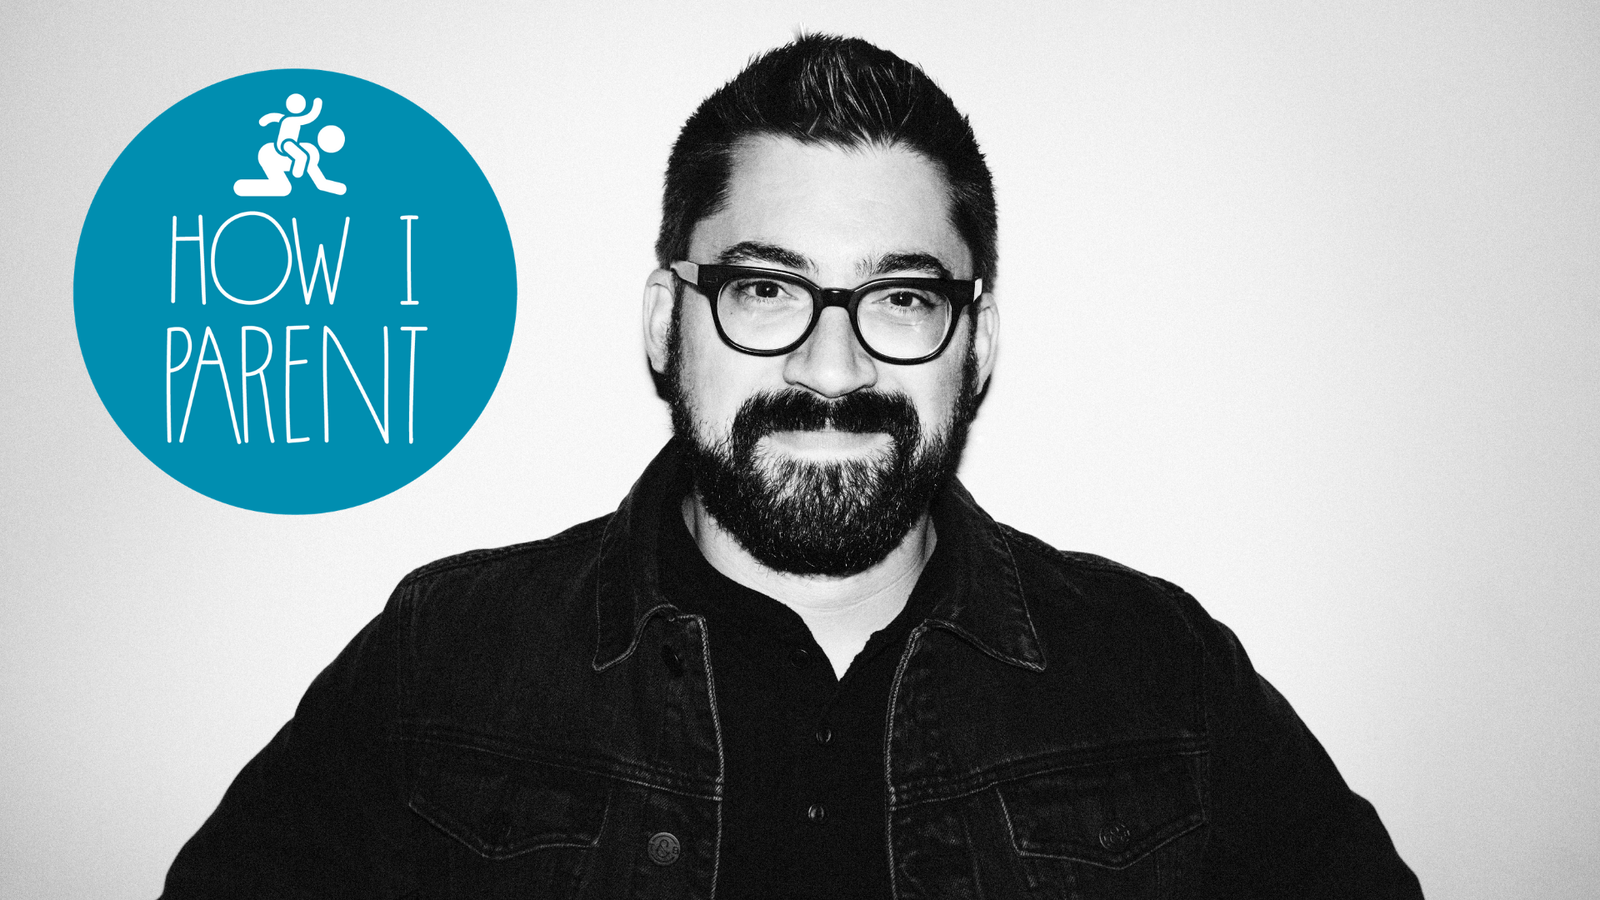 I'm Author Austin Kleon, and This Is How I Parent